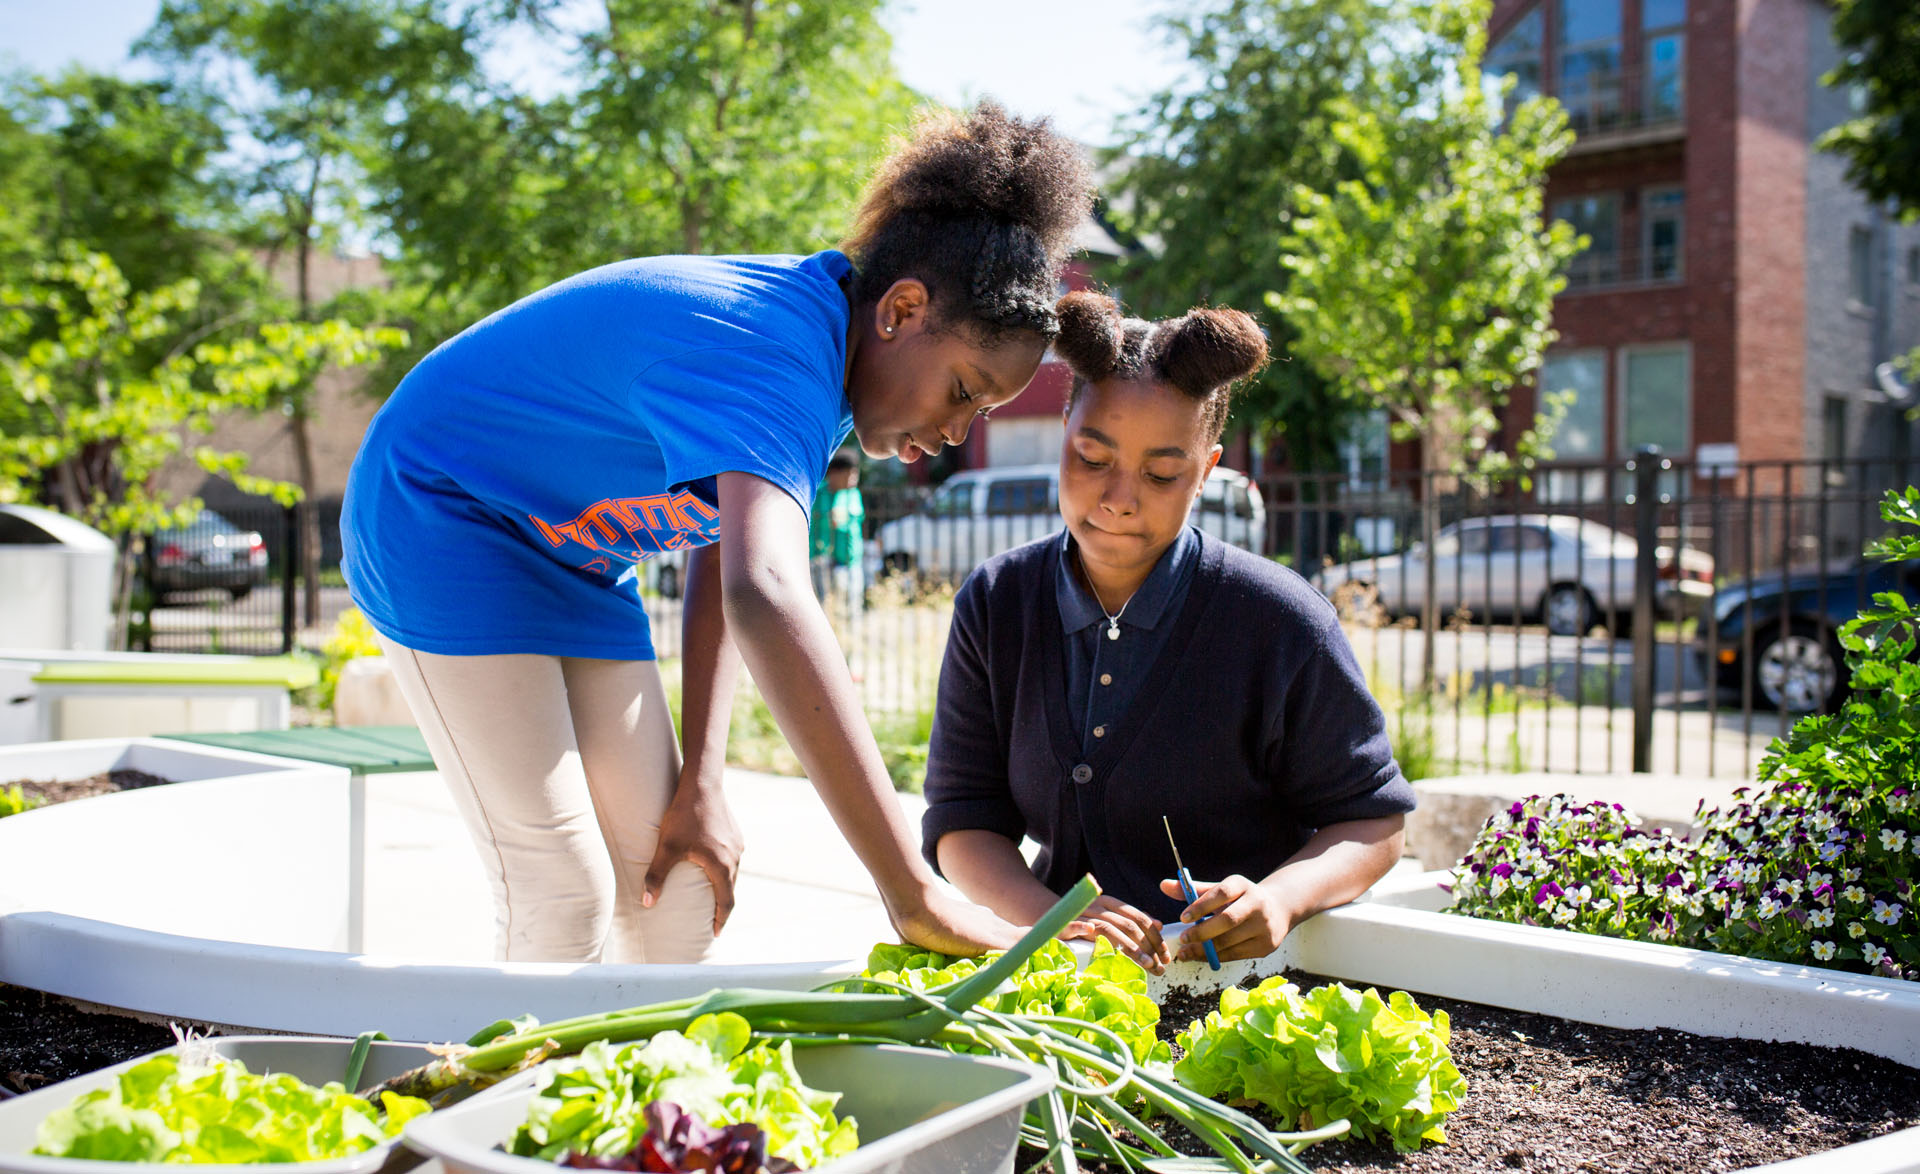 Space To Grow Schools Extend The Classroom Outdoors